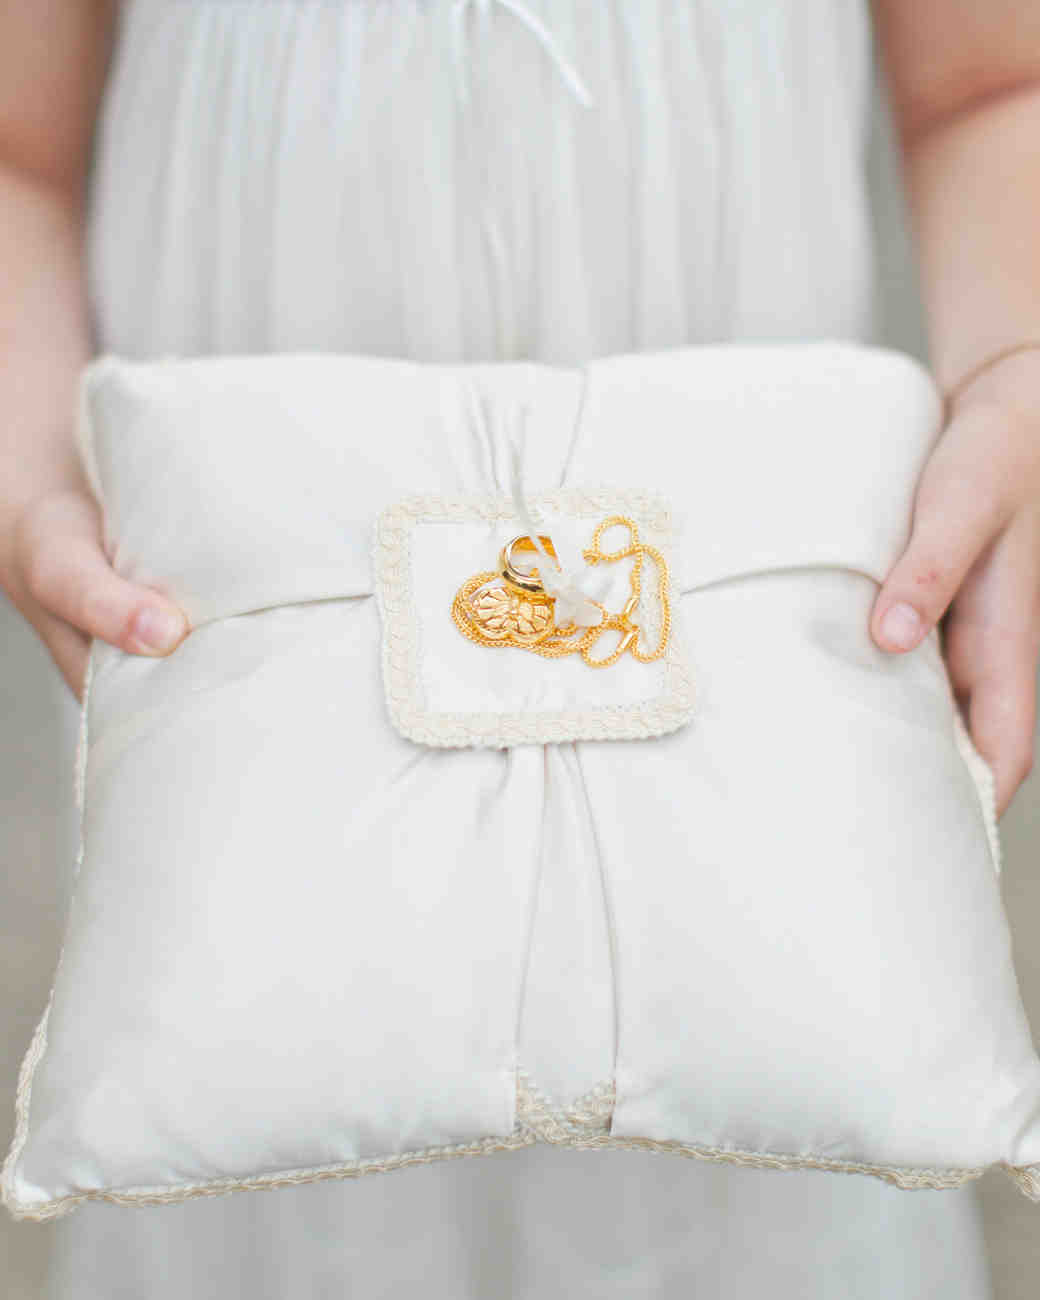 bride ring attached wedding holds shutterstock royalty golden pair stock two image rings photo pillow with free for to